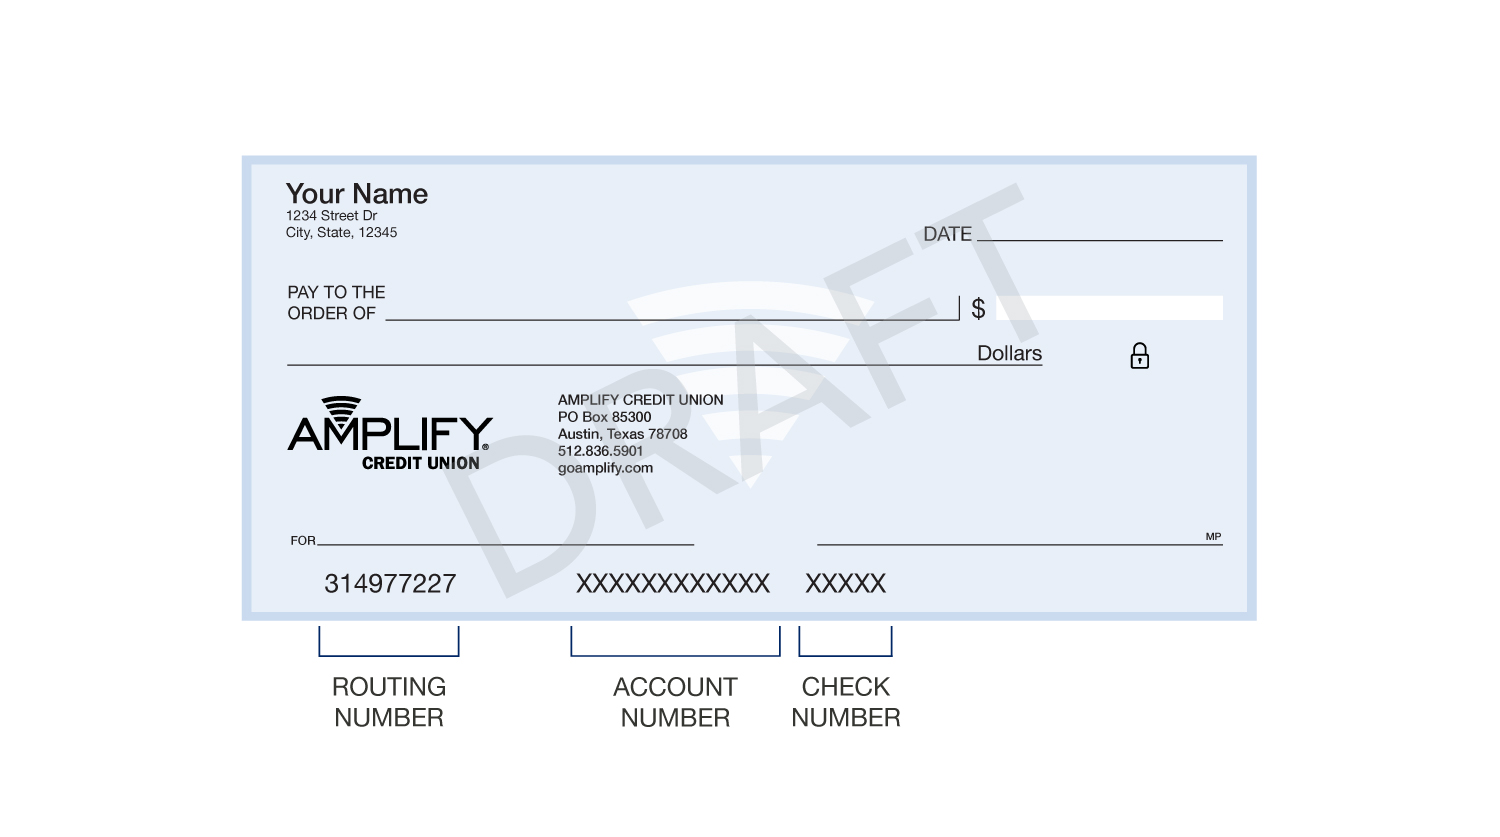 routing number details